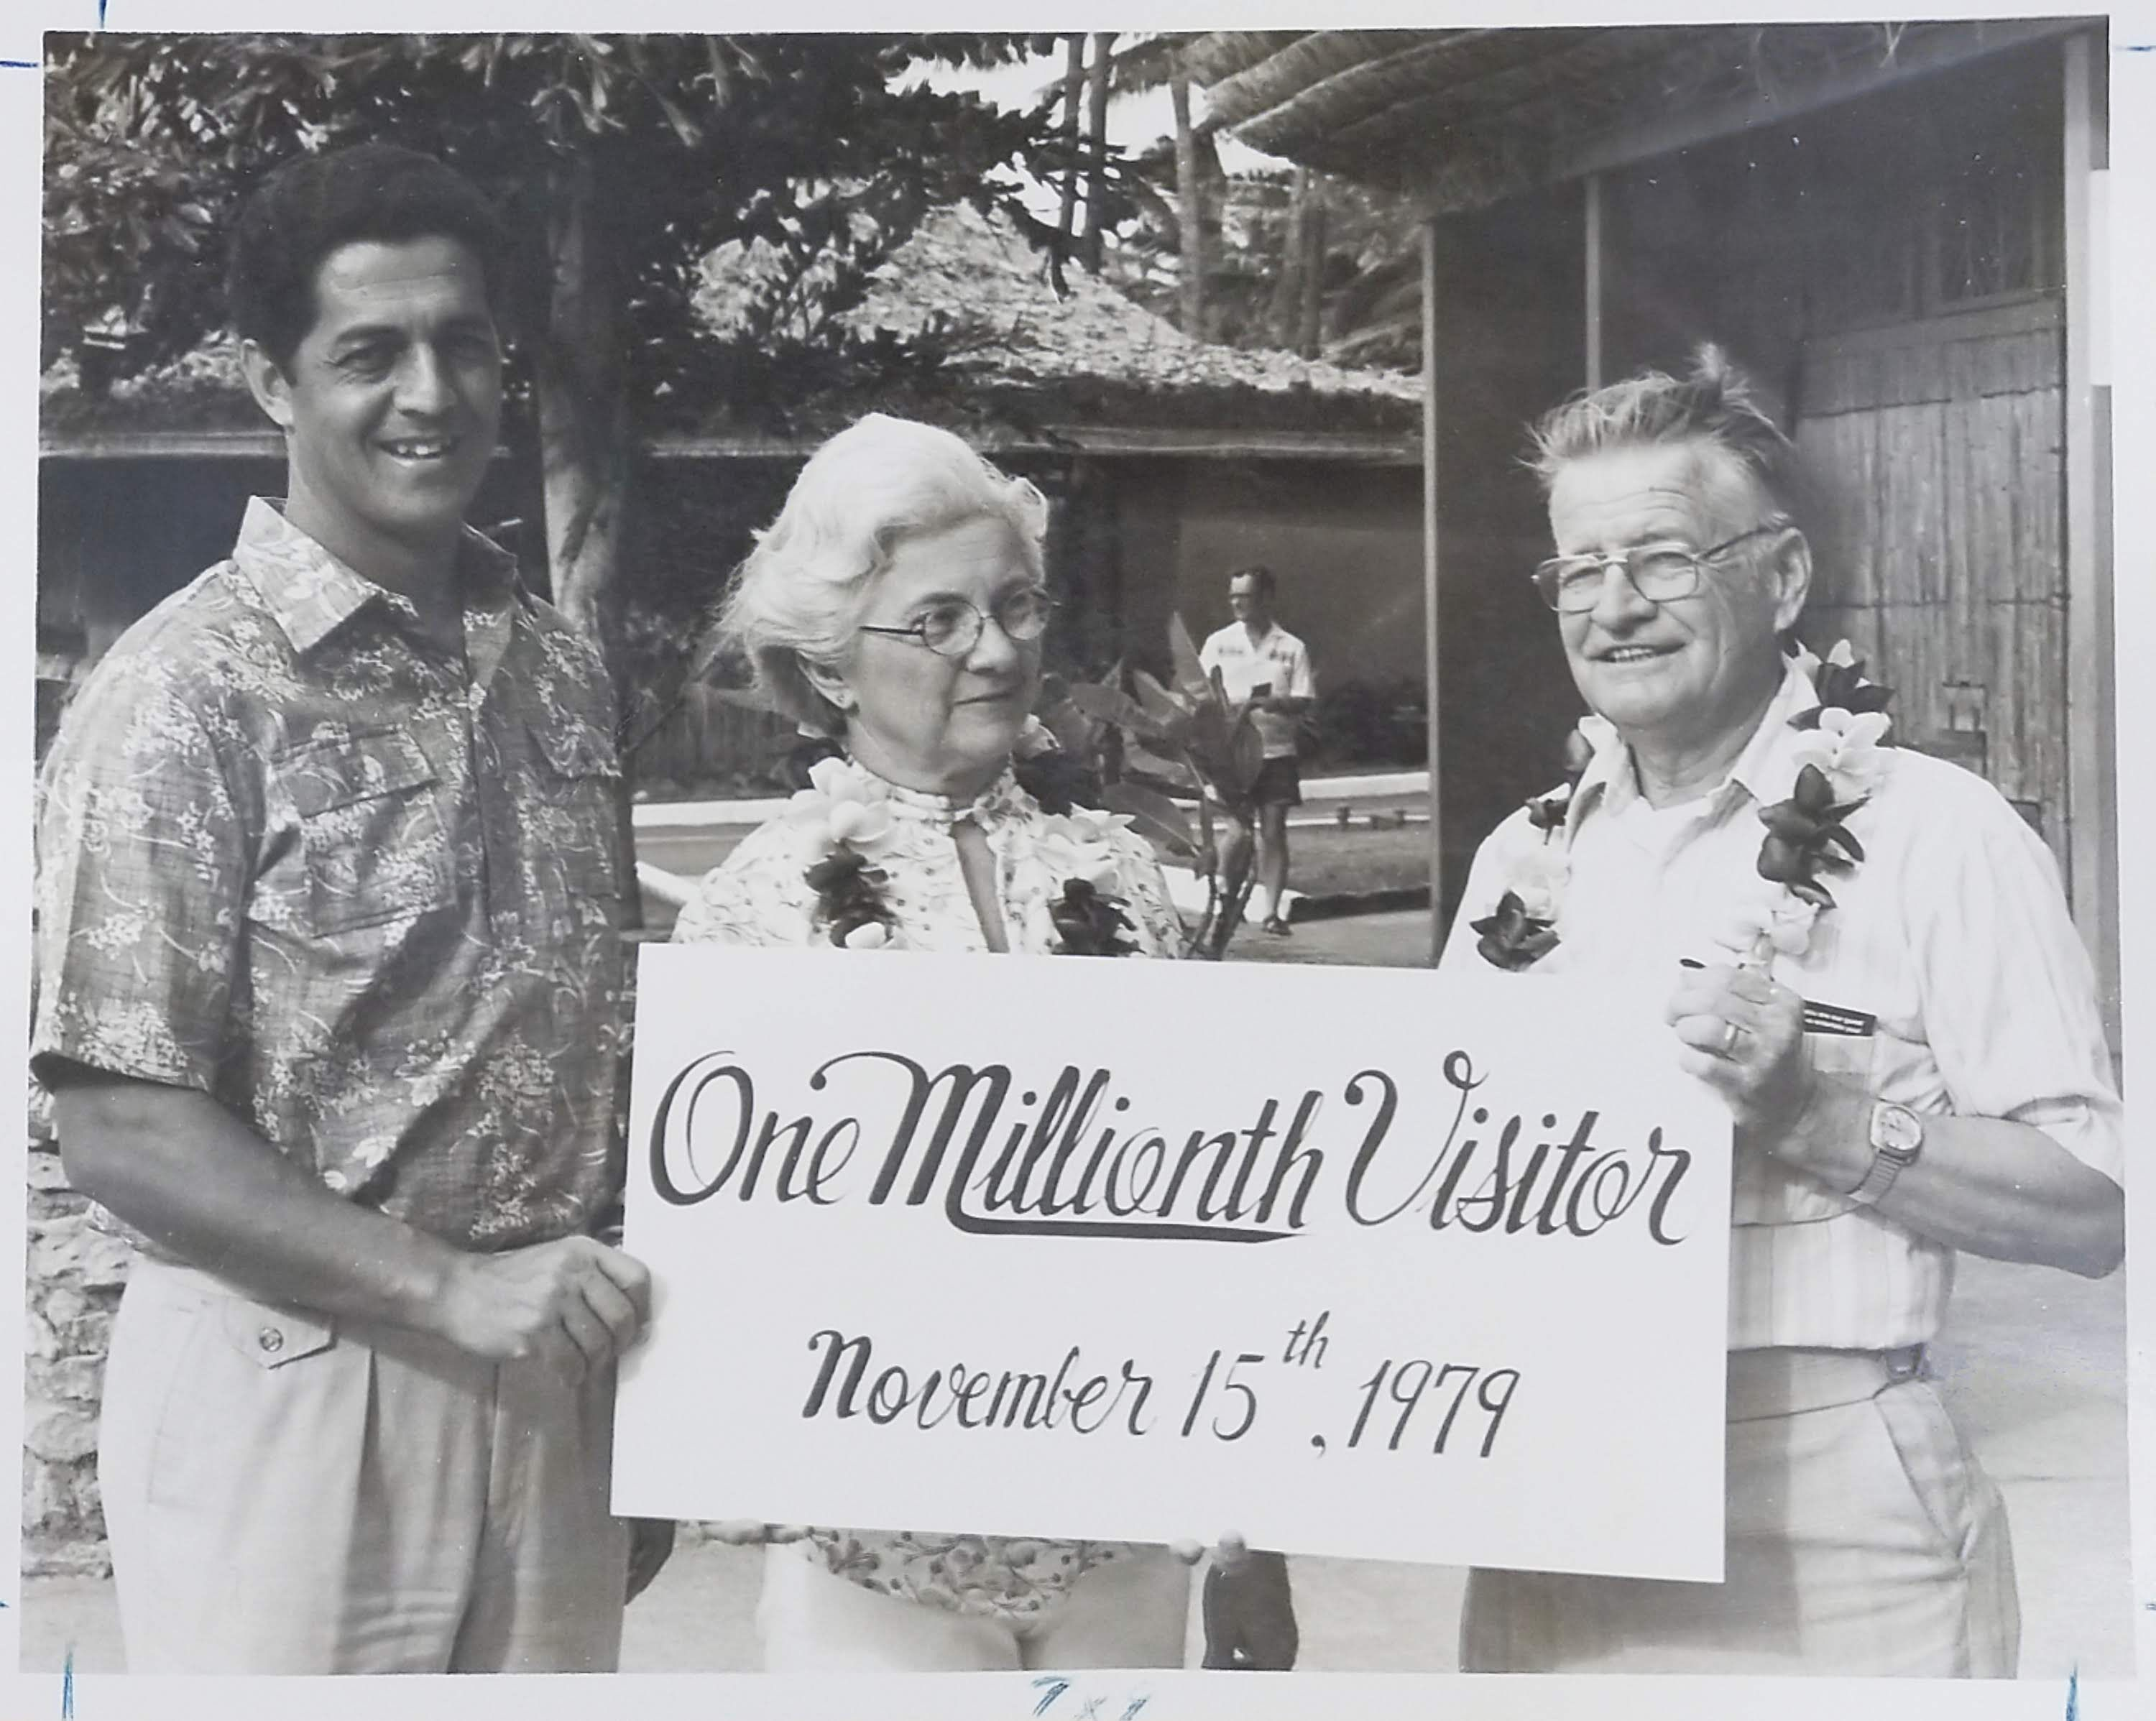 photo of Bill Craven , as President and General Manager of the Polynesian Cultural Center recognizing the one millionth guest at the Center.